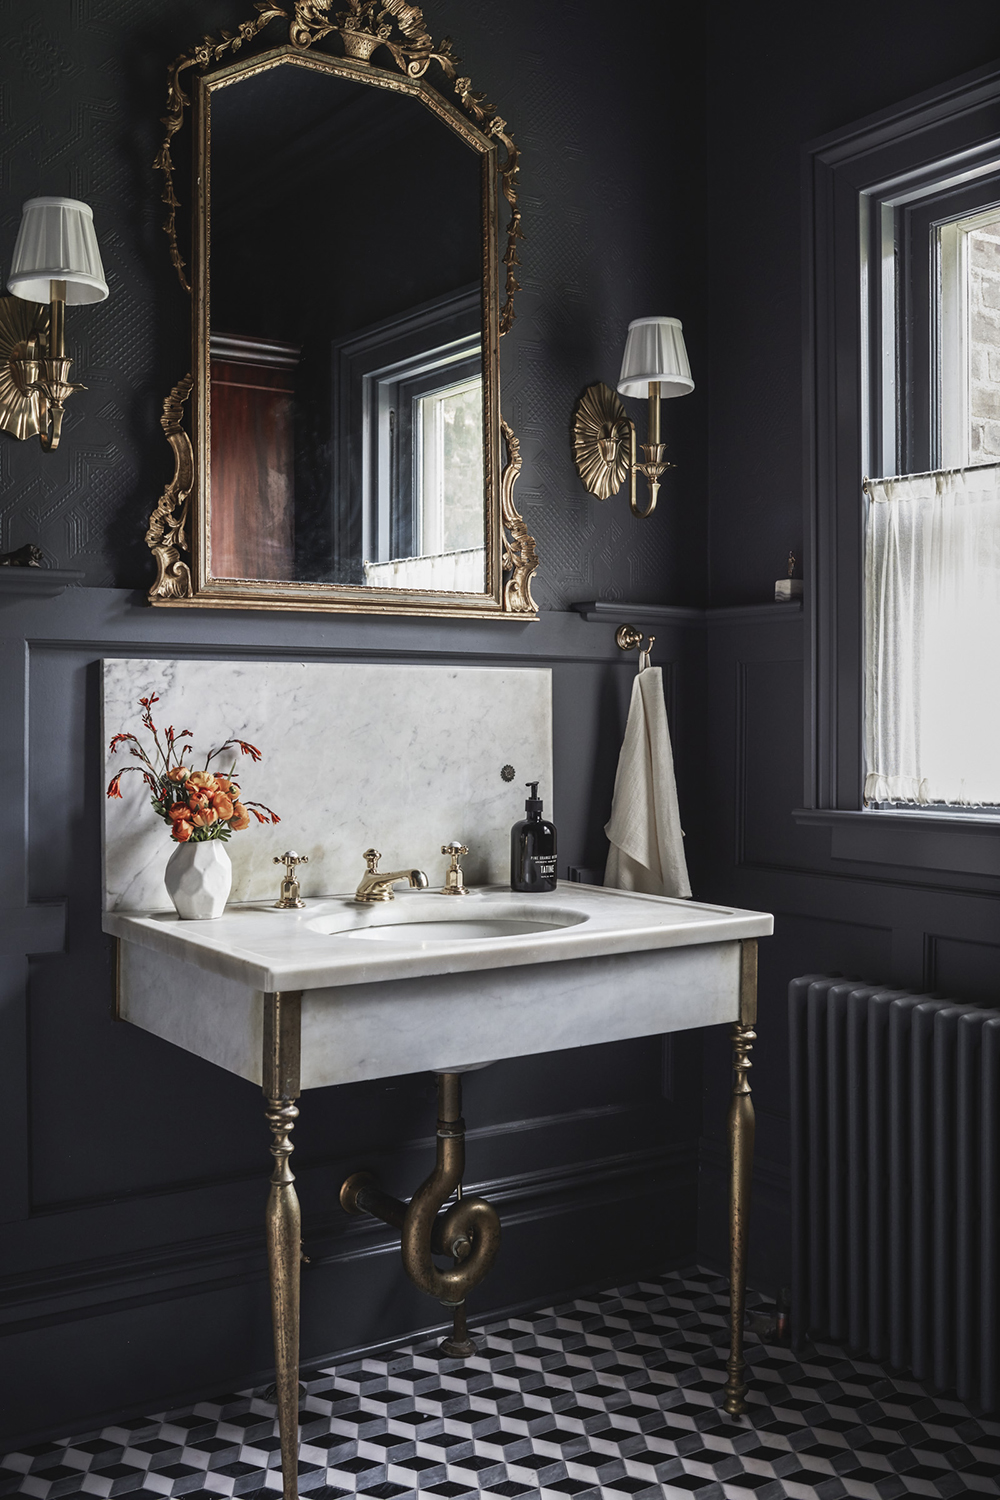 Marble Bathroom Sink With Brass Legs Room For Tuesday